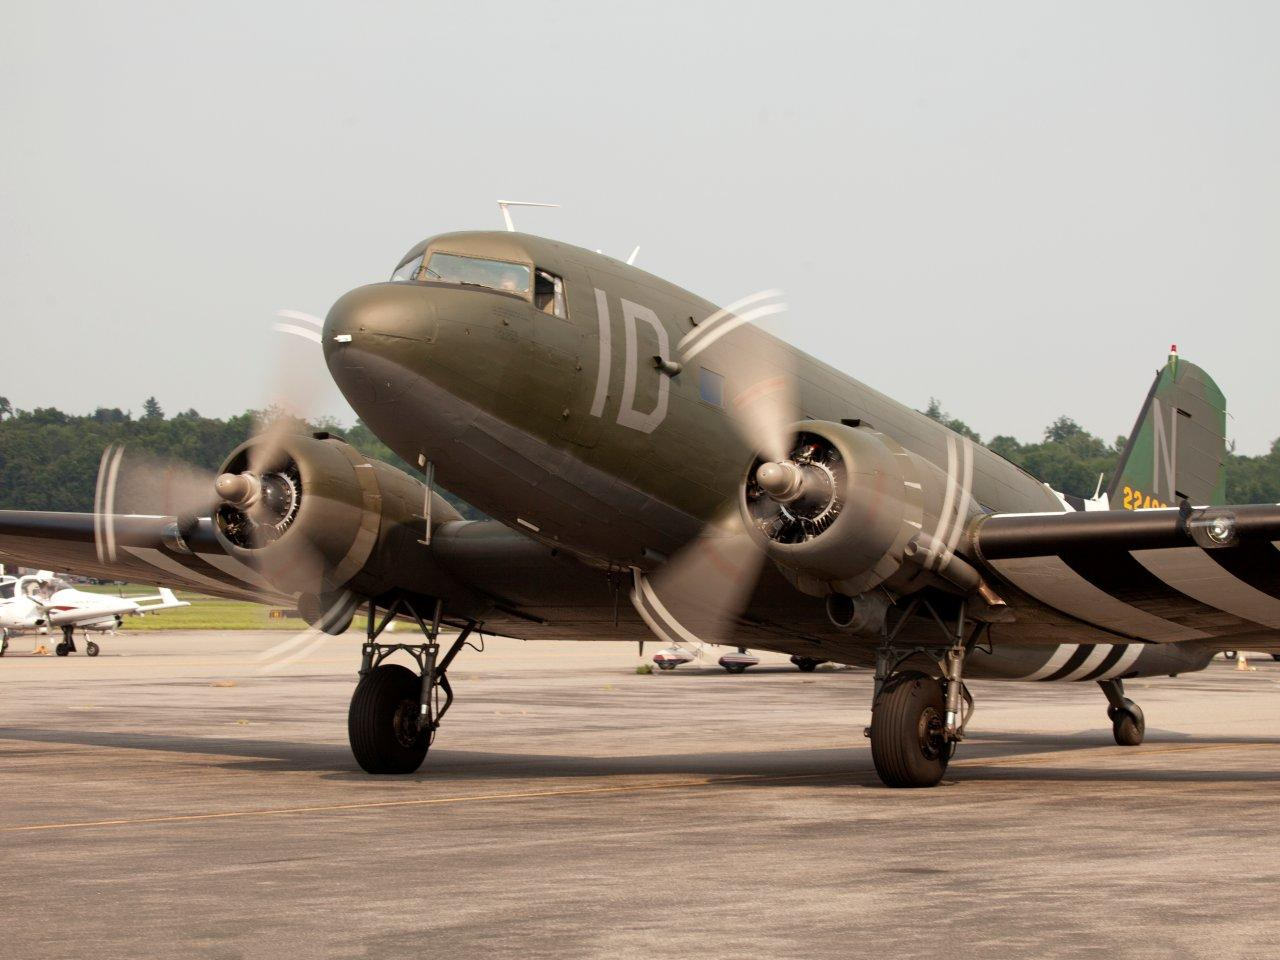 Union Jack Dak resplendent in her wartime markings once more.(photo via DaksOverNormandy.com)